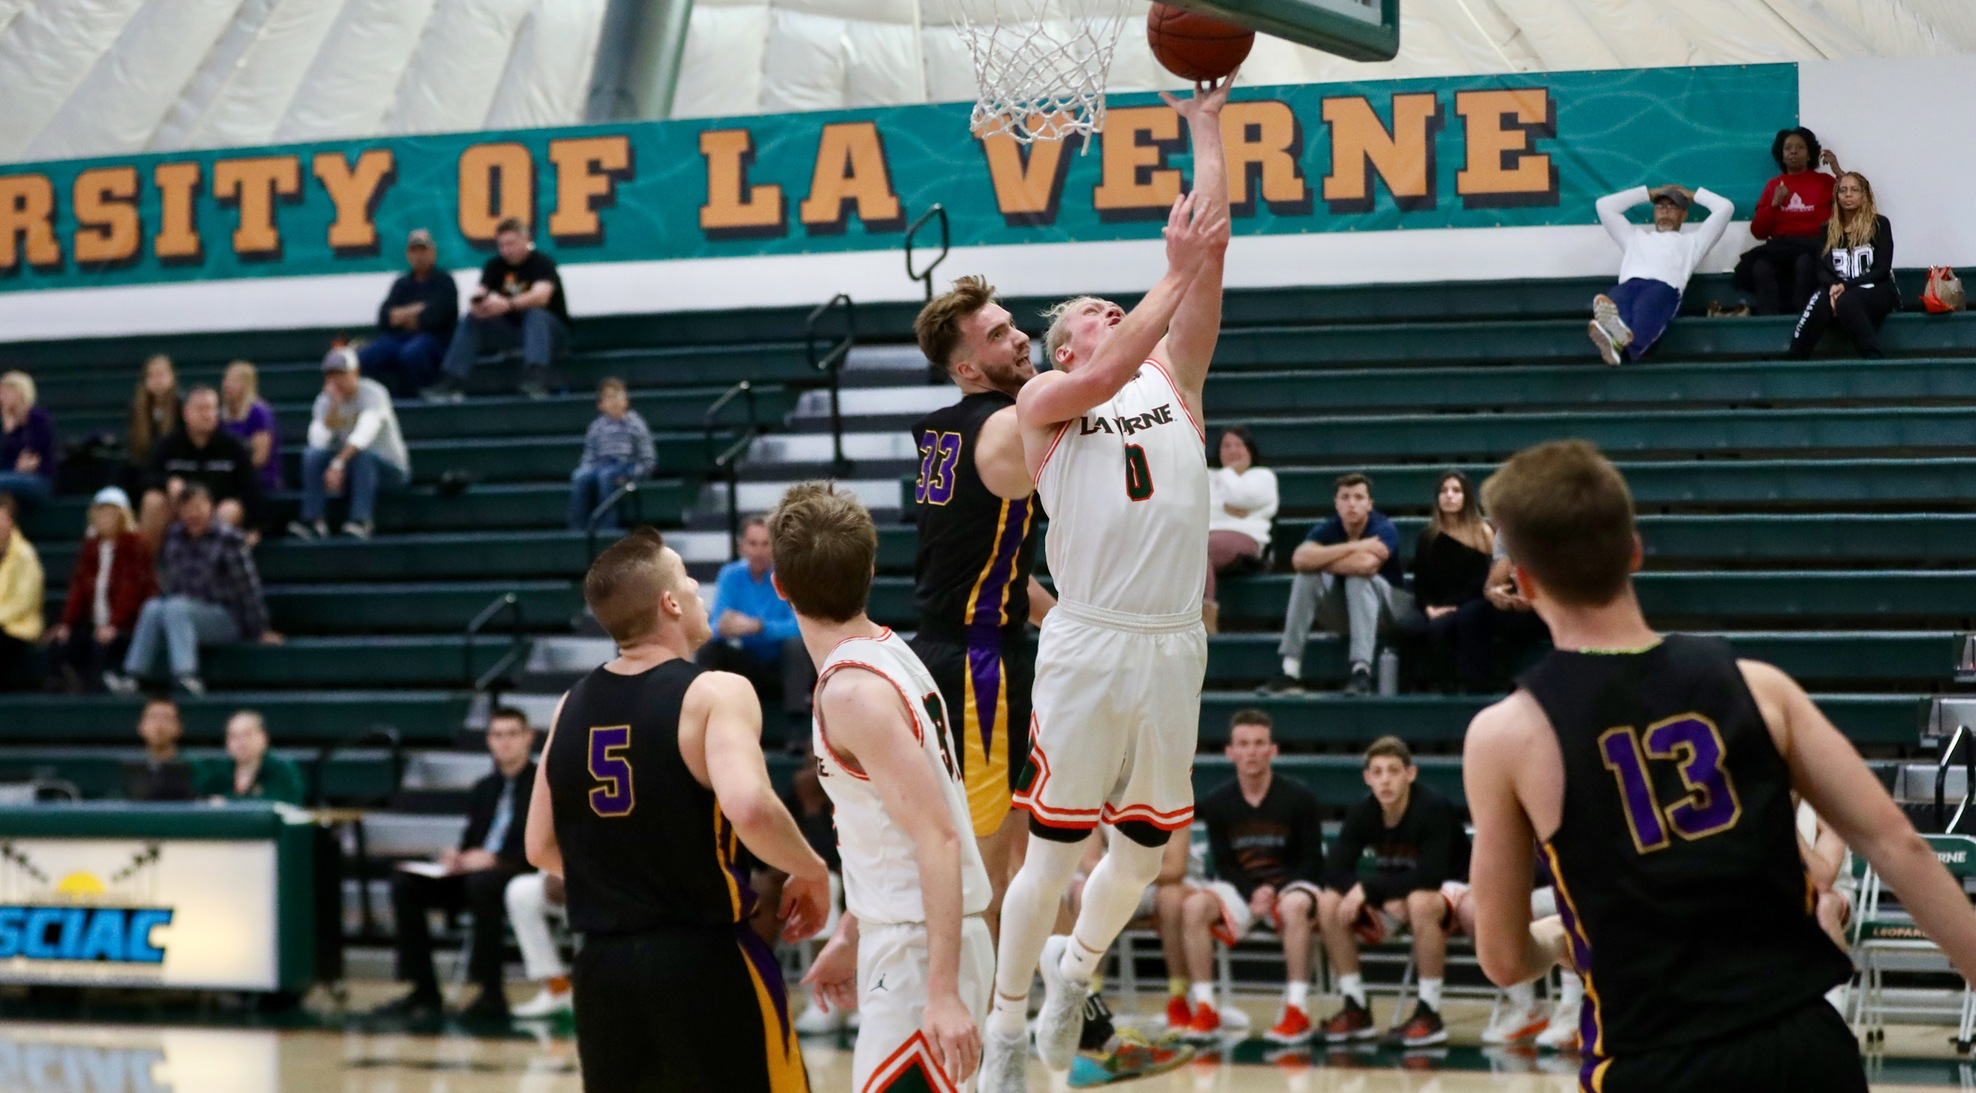 Men's Basketball nearly upsets first place Occidental